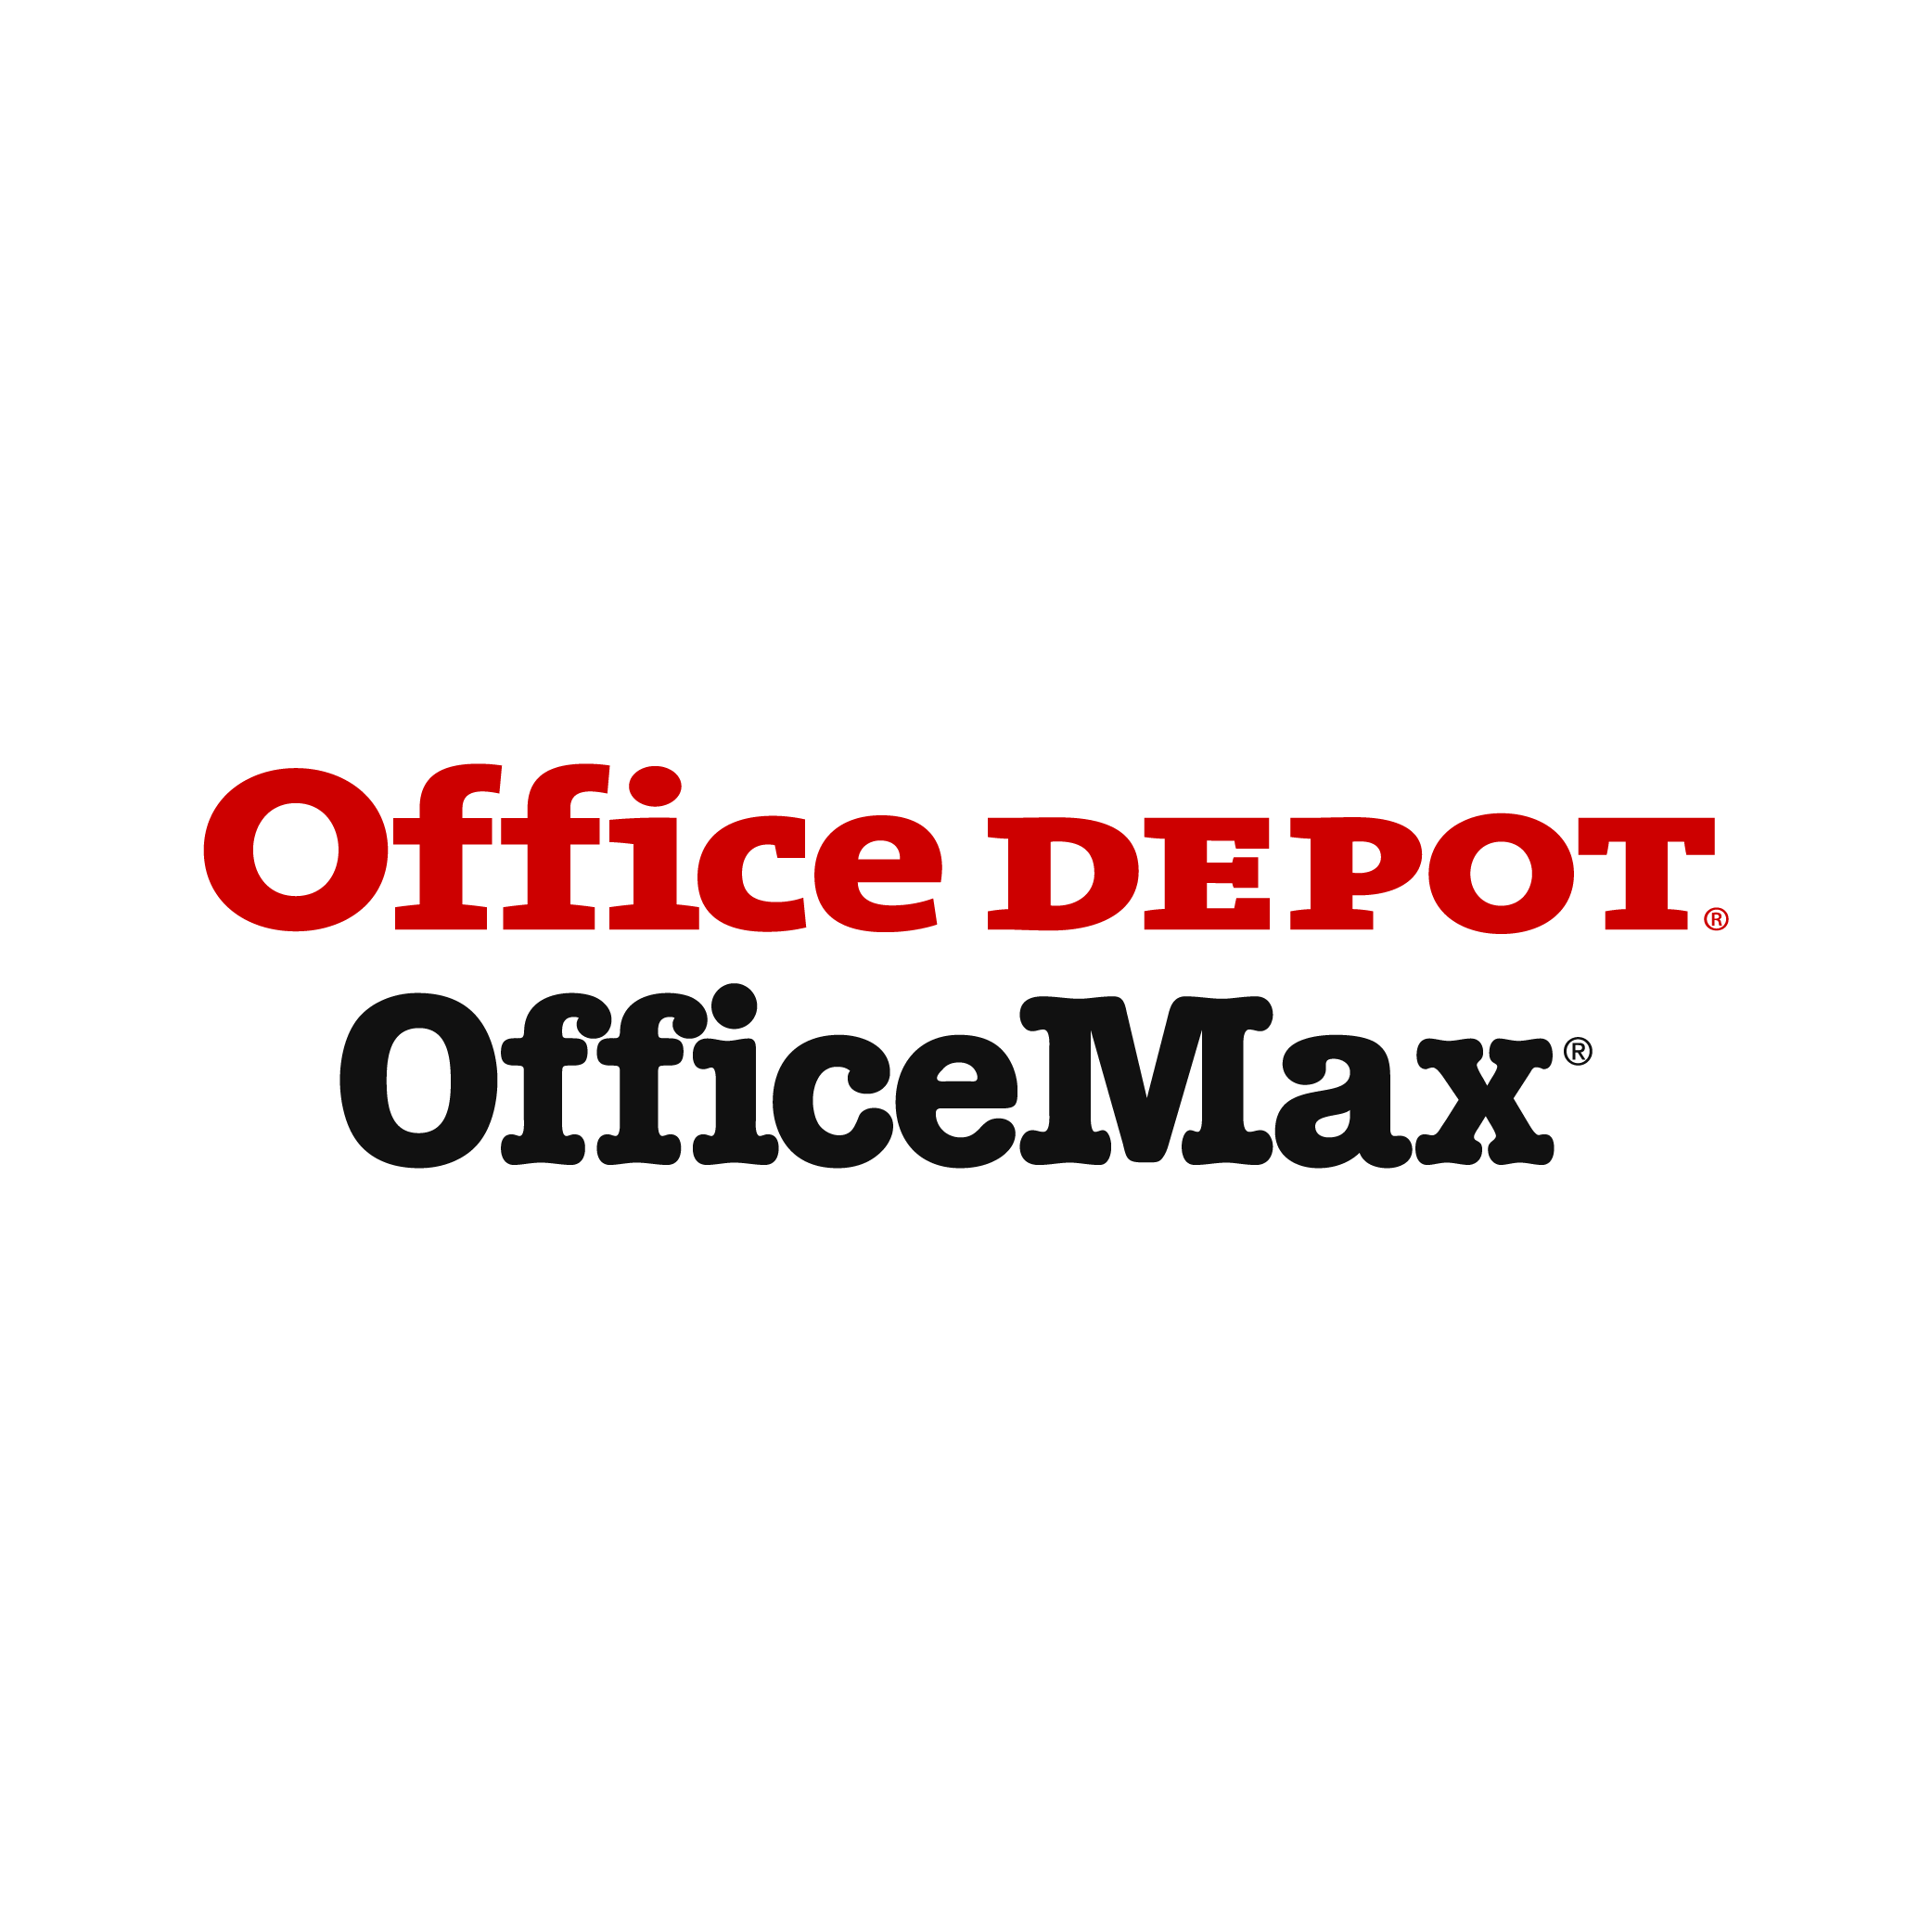 Marvelous Photos (1 Photos). Office Depot   Alpharetta ...